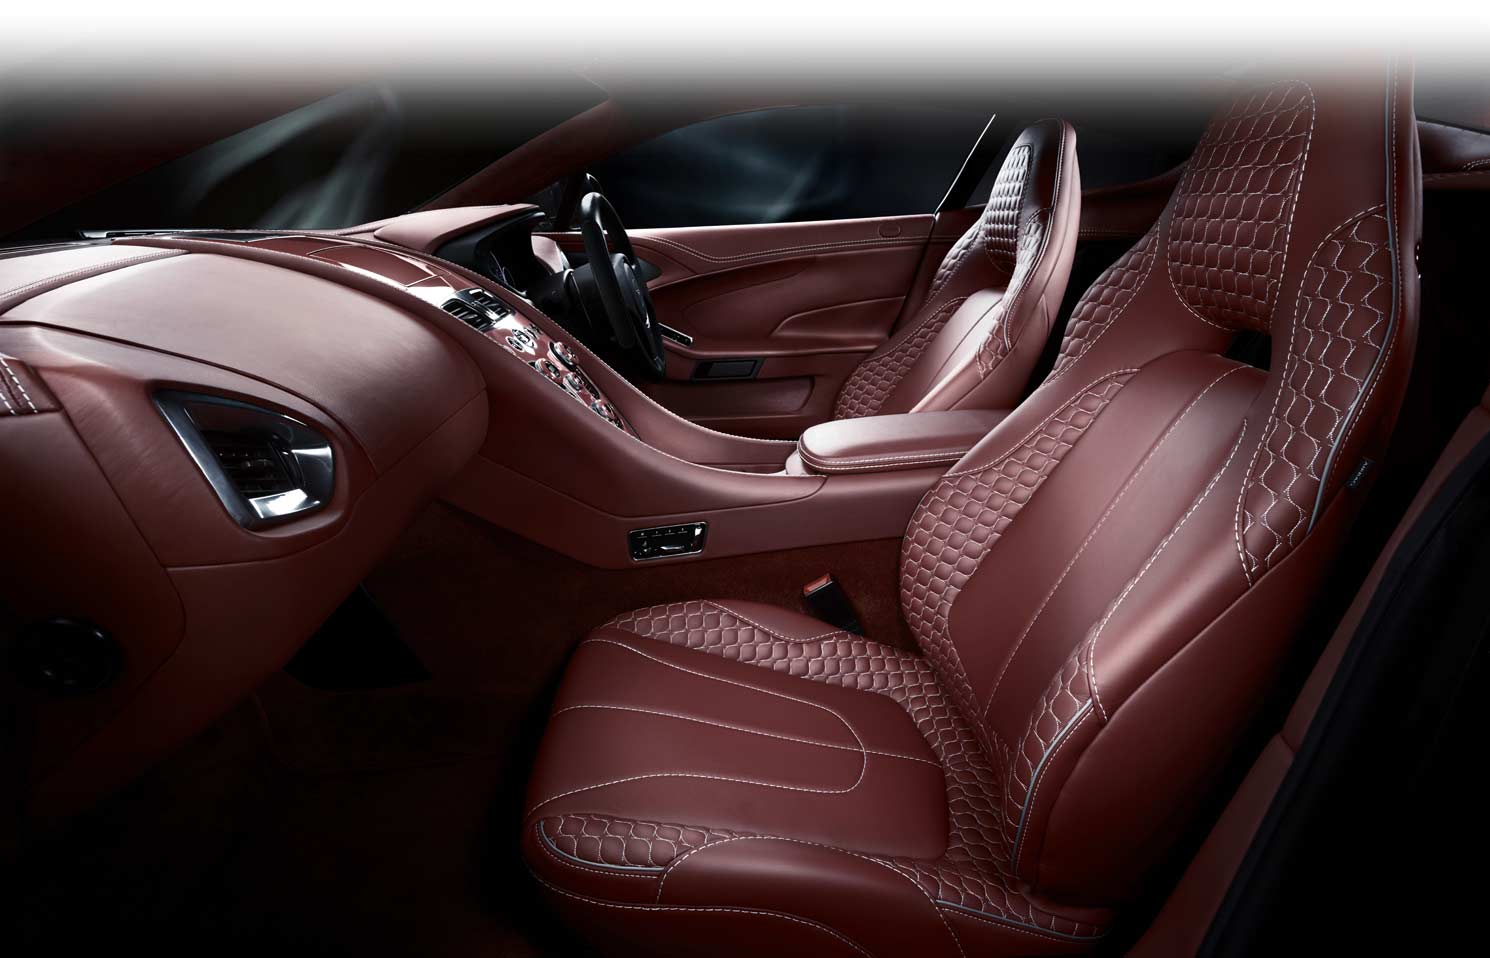 The New Vanquish - Luxury Interior